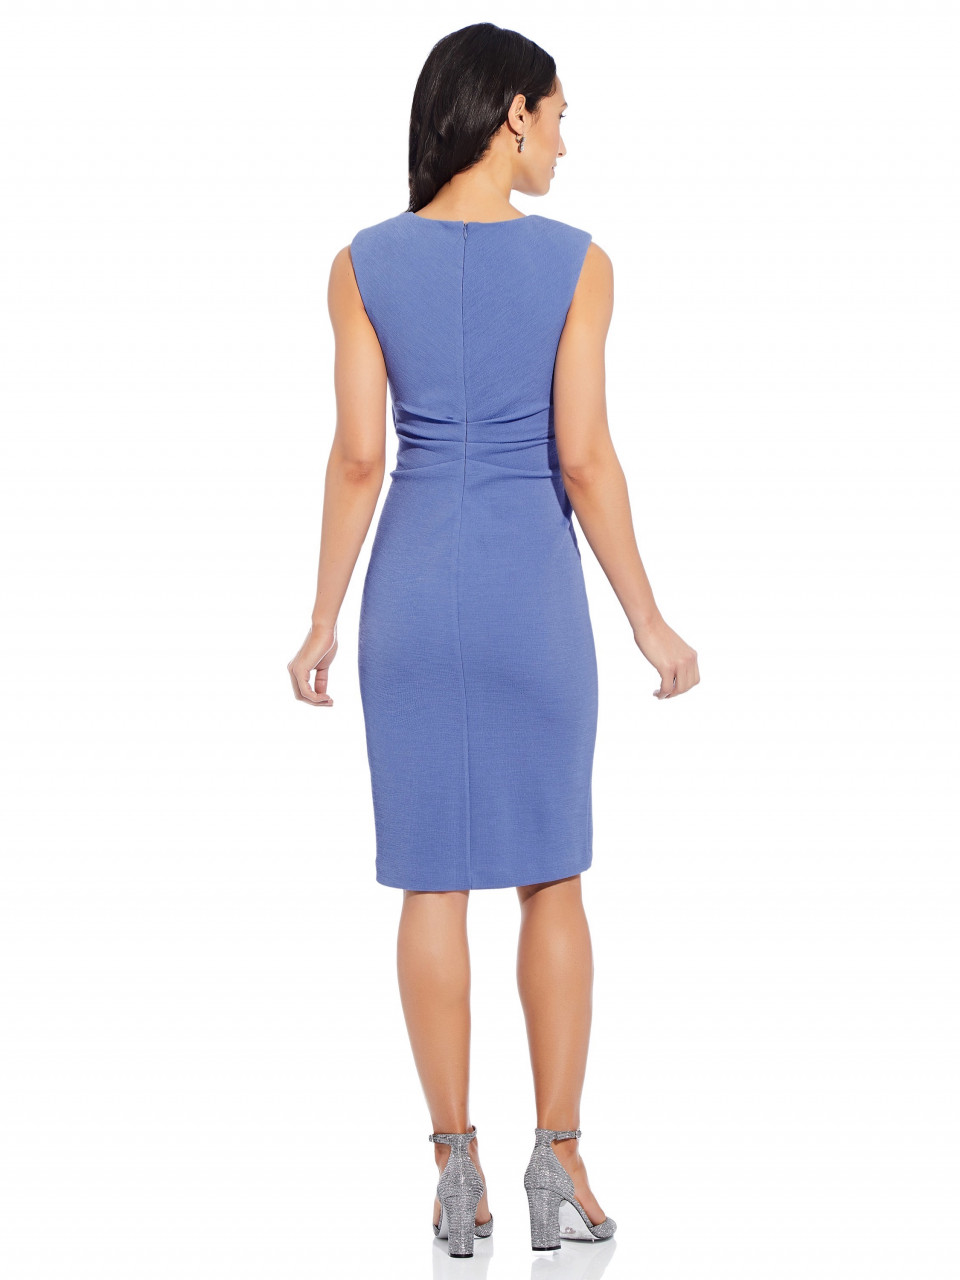 Rio knit tie sheath dress